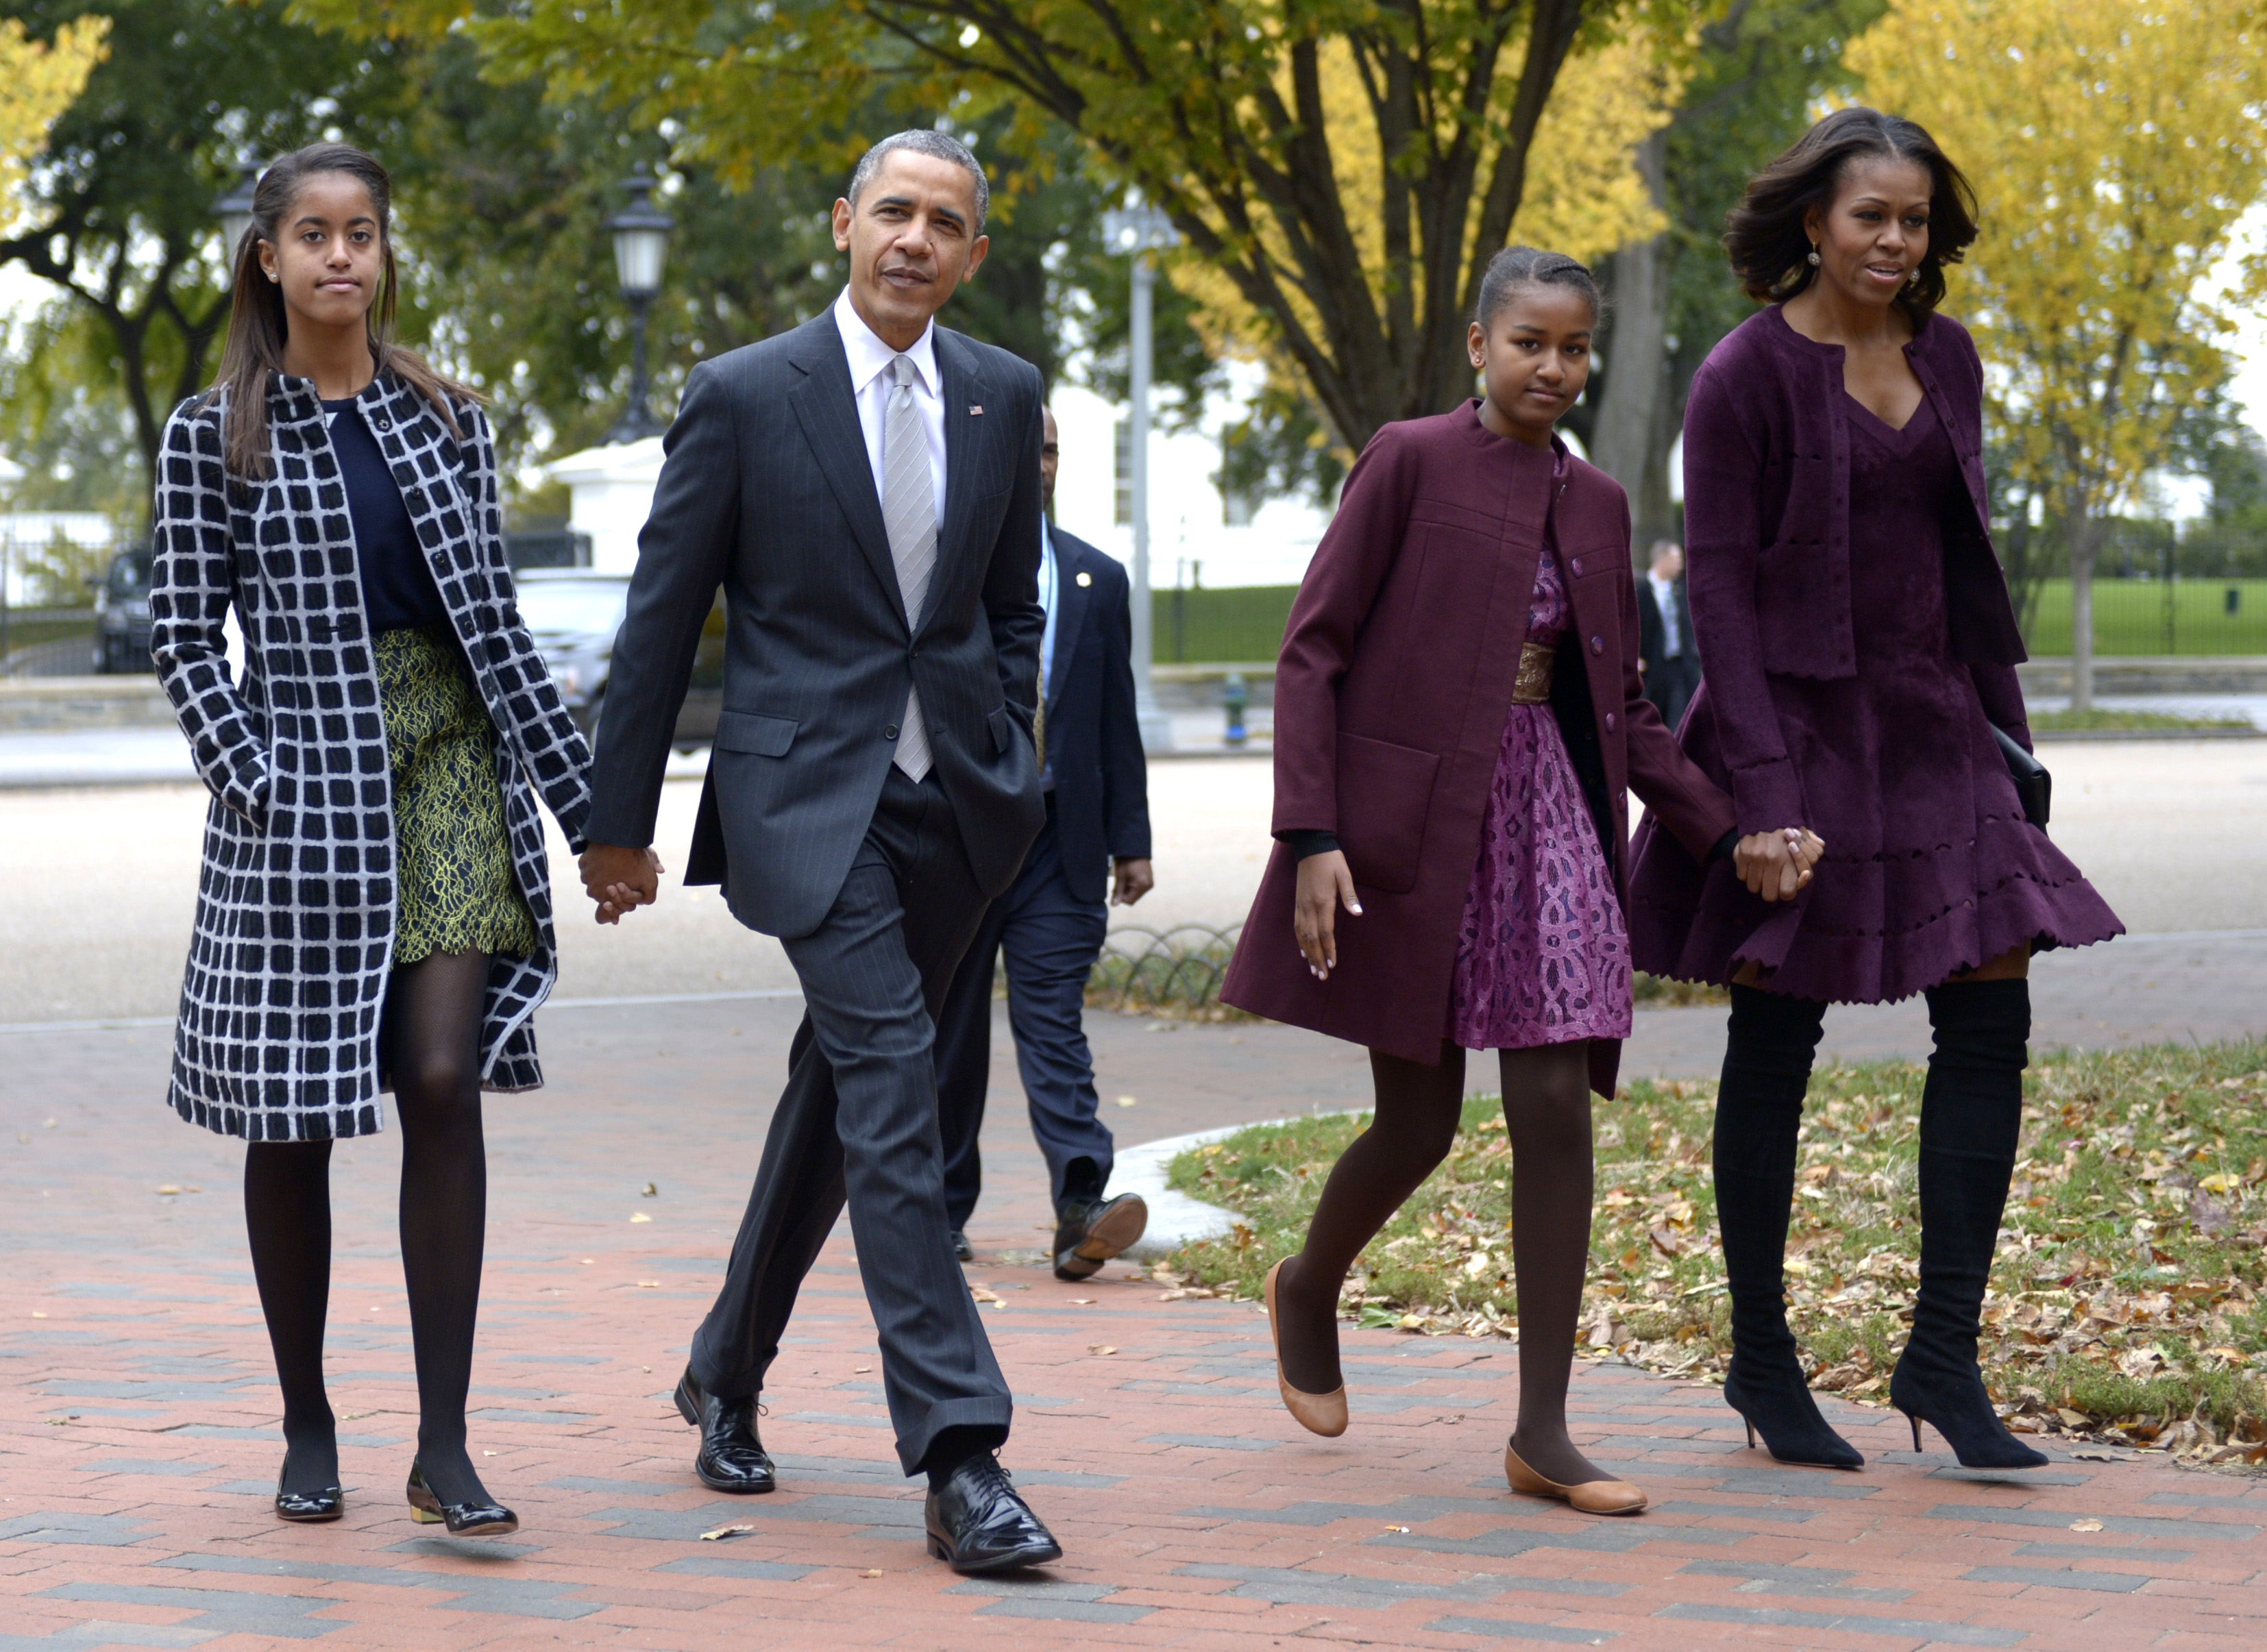 U.S. President Barack Obama walks with his wife Michelle Obama (R) and two daughters Malia Obama (L) and Sasha Obama (2R) through Lafayette Park to St John's Church to attend service October 27, 2013 in Washington, DC. Obama is scheduled to travel to Boston this week.